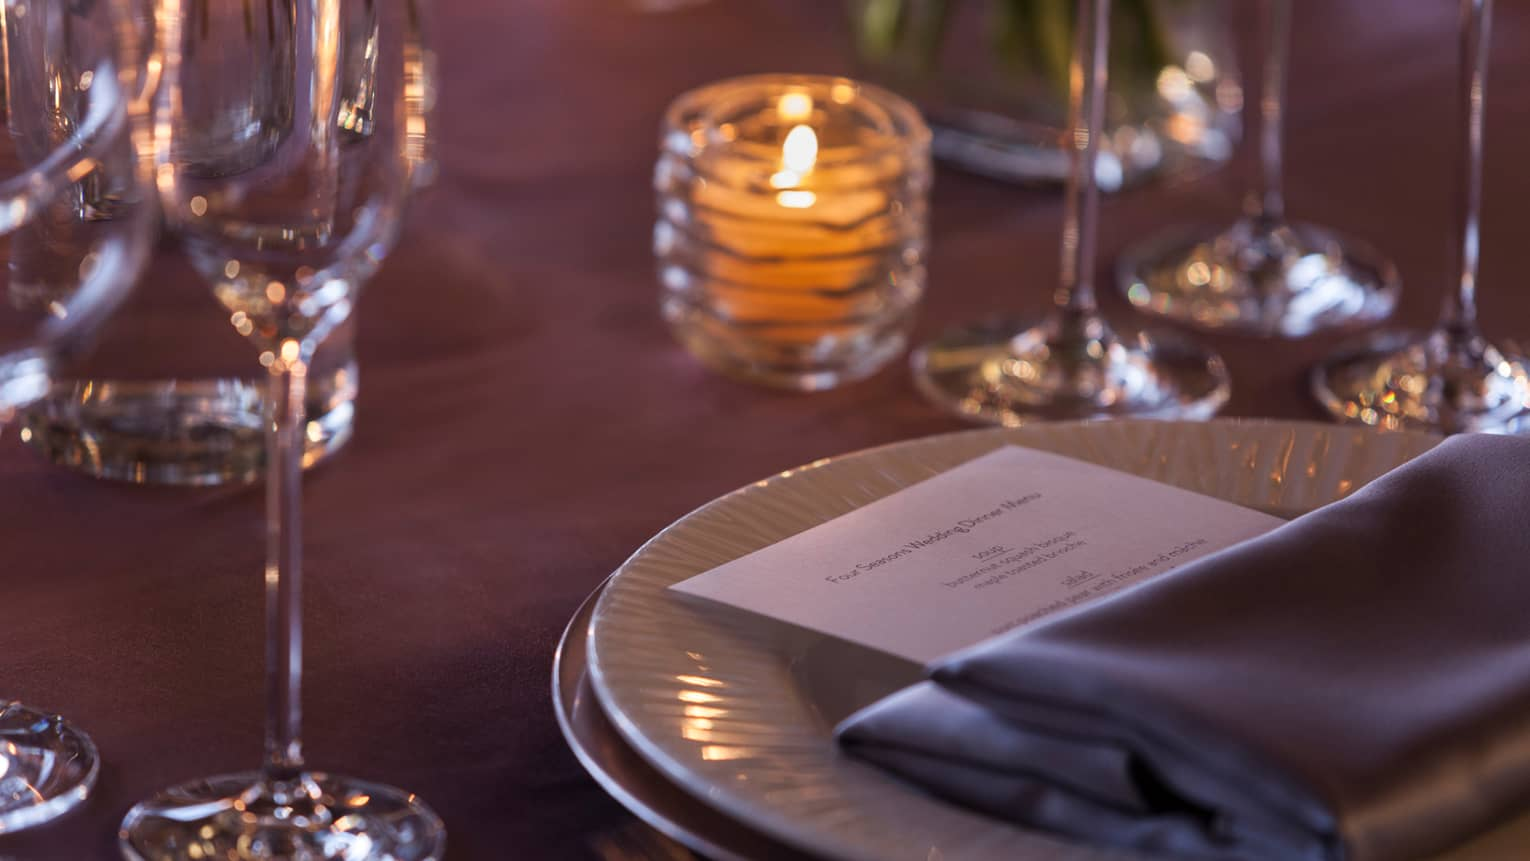 Close up of table with candle, grey napkin and dinner menu on white plate, glasses